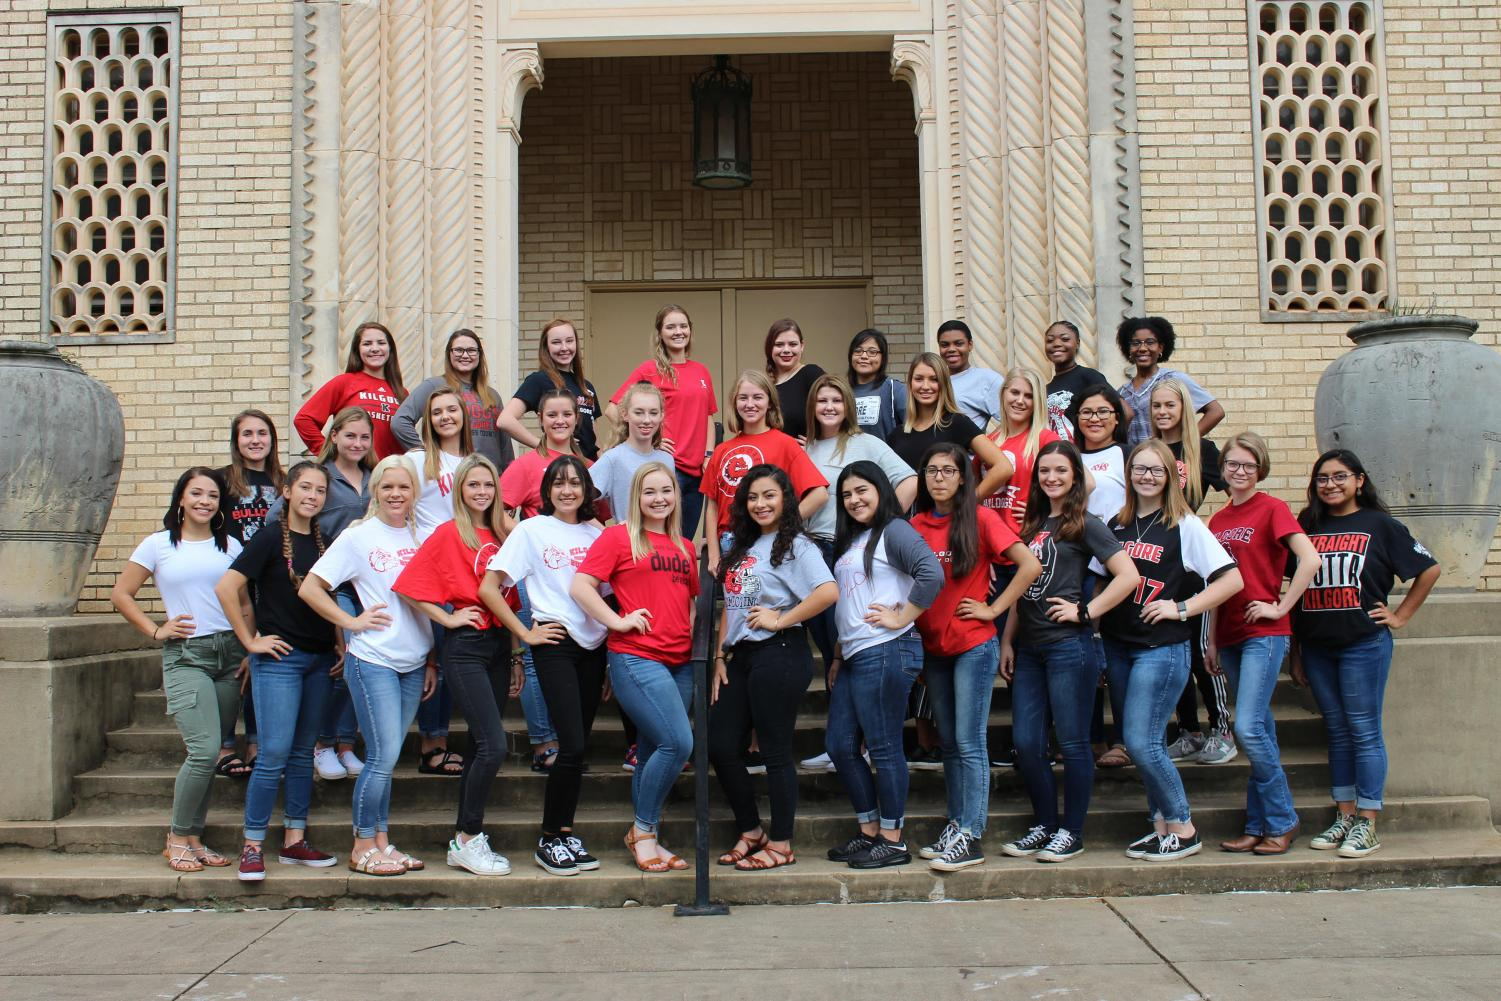 The 2018-19 homecoming duchesses gather in front of the school for a picture